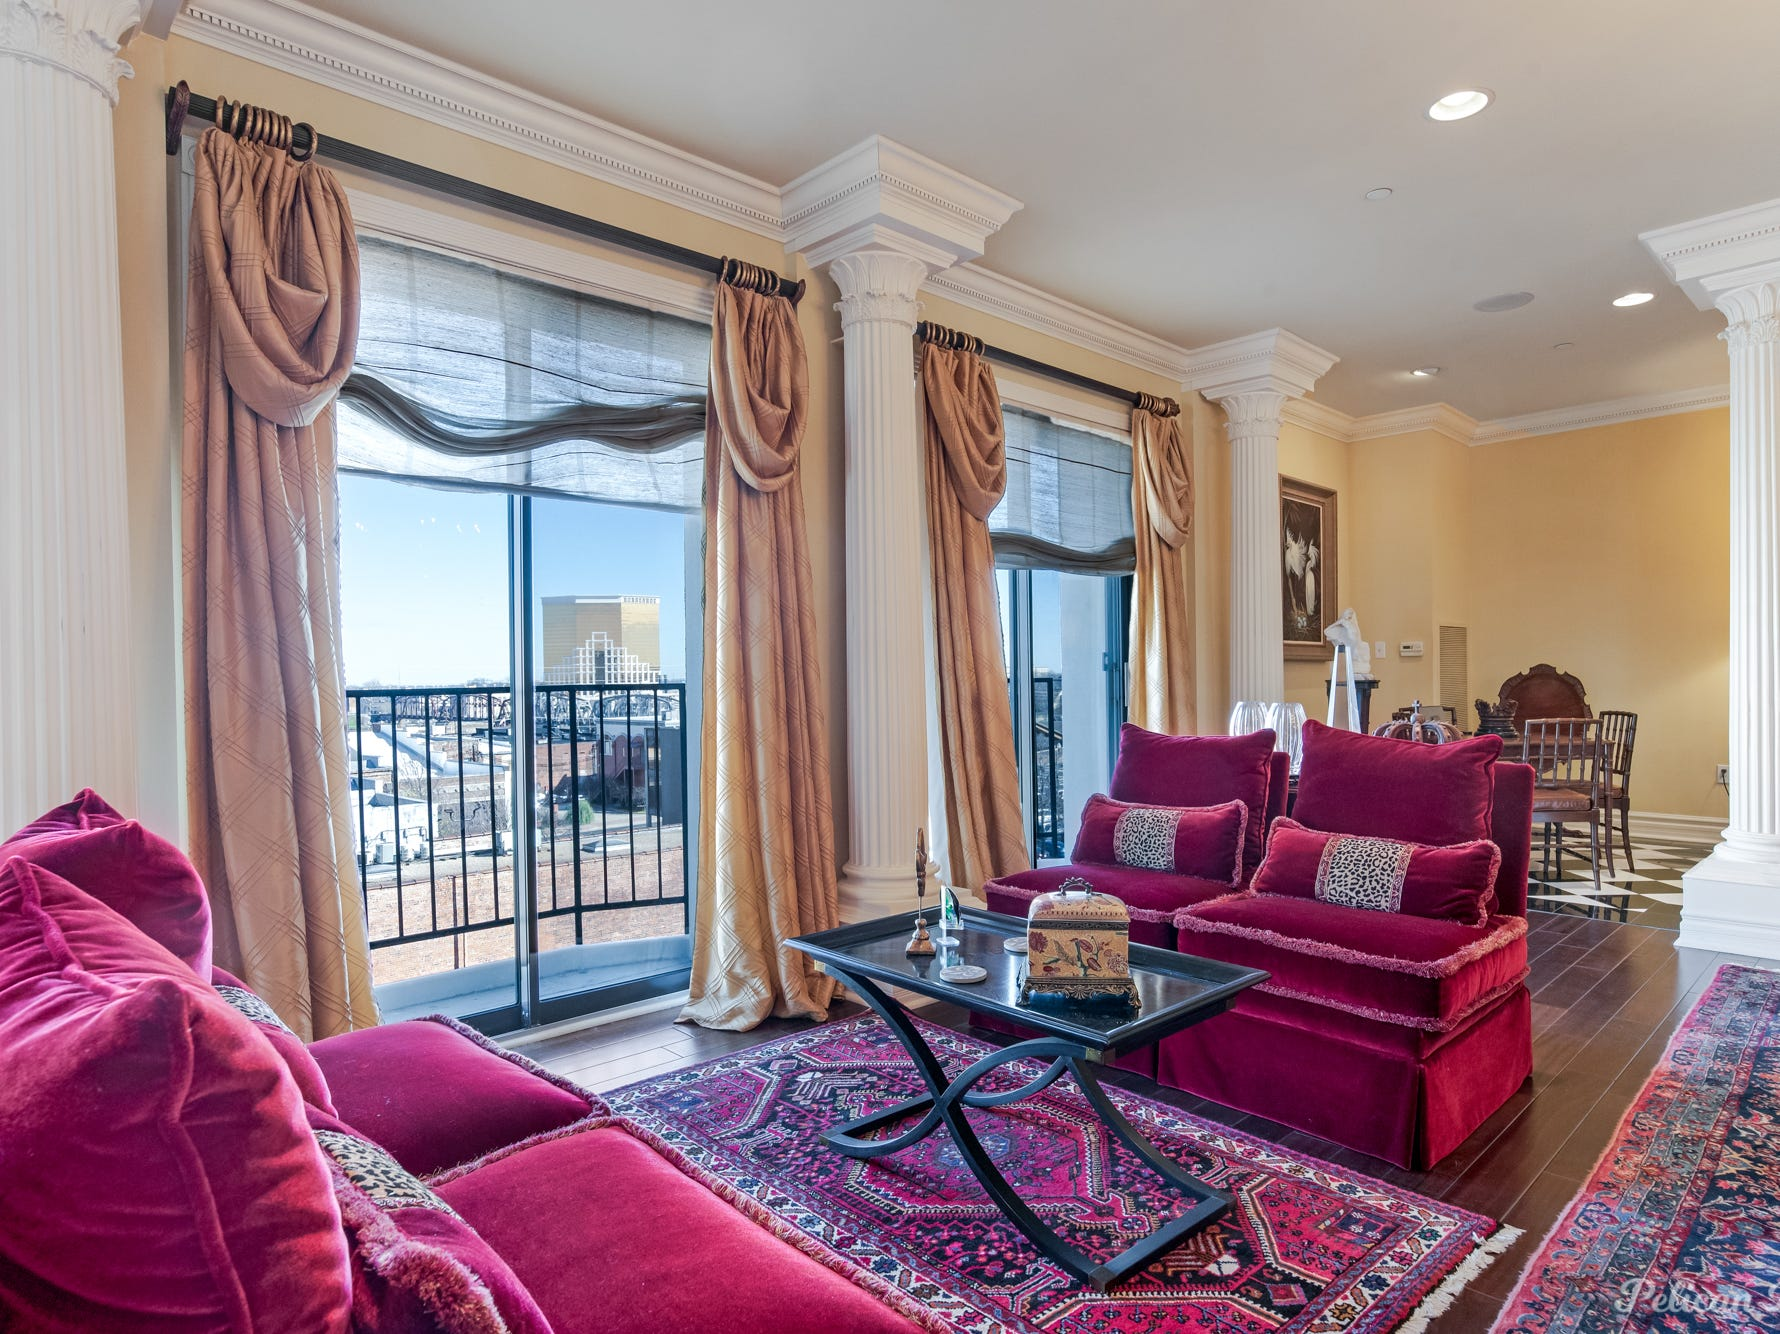 229 Milam Street, Number 45, Shreveport  Price: $450,000  Details: 3 bedrooms, 3 bathrooms, 3,042 square feet  Features: Amazing downtown views from every window, high-end features and finishes, fluted columns, floor to ceiling windows, wall of built-ins, sleek kitchen, butler's pantry with plenty of storage, 2 reserved covered parking spaces.   Contact: Karen Hoell, 780-4212